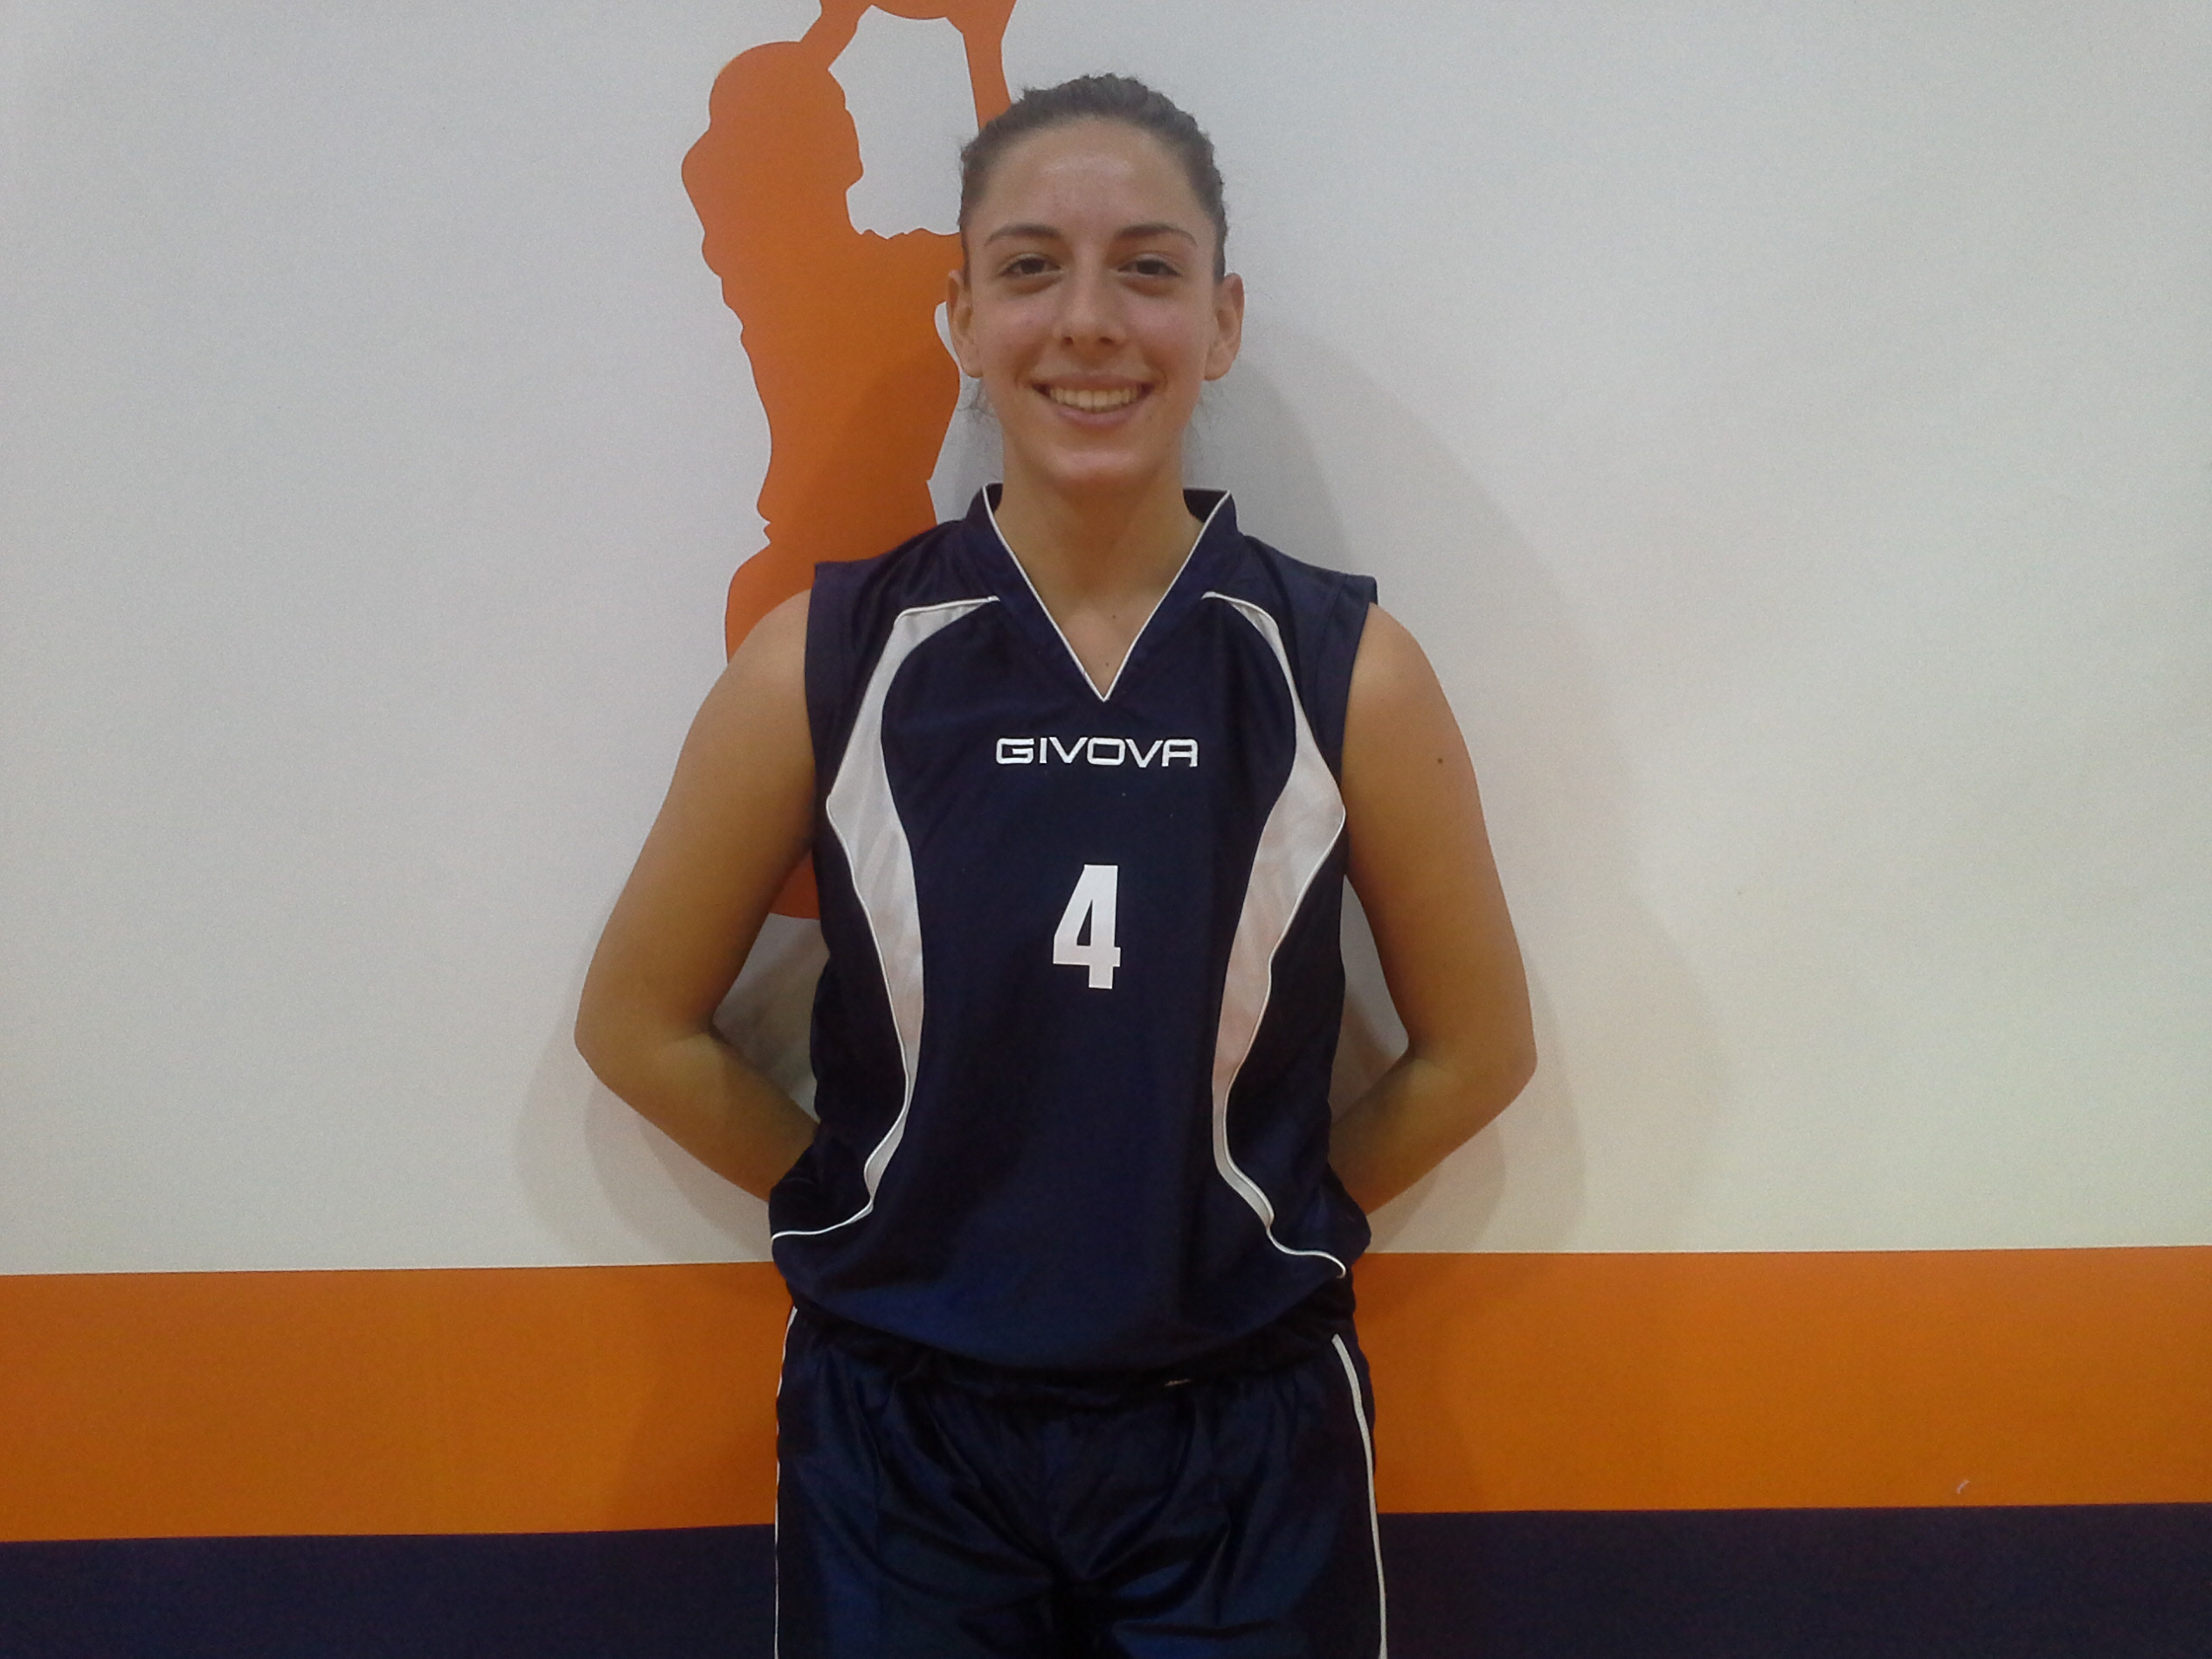 Valentina Guadagno dell'under 20 B